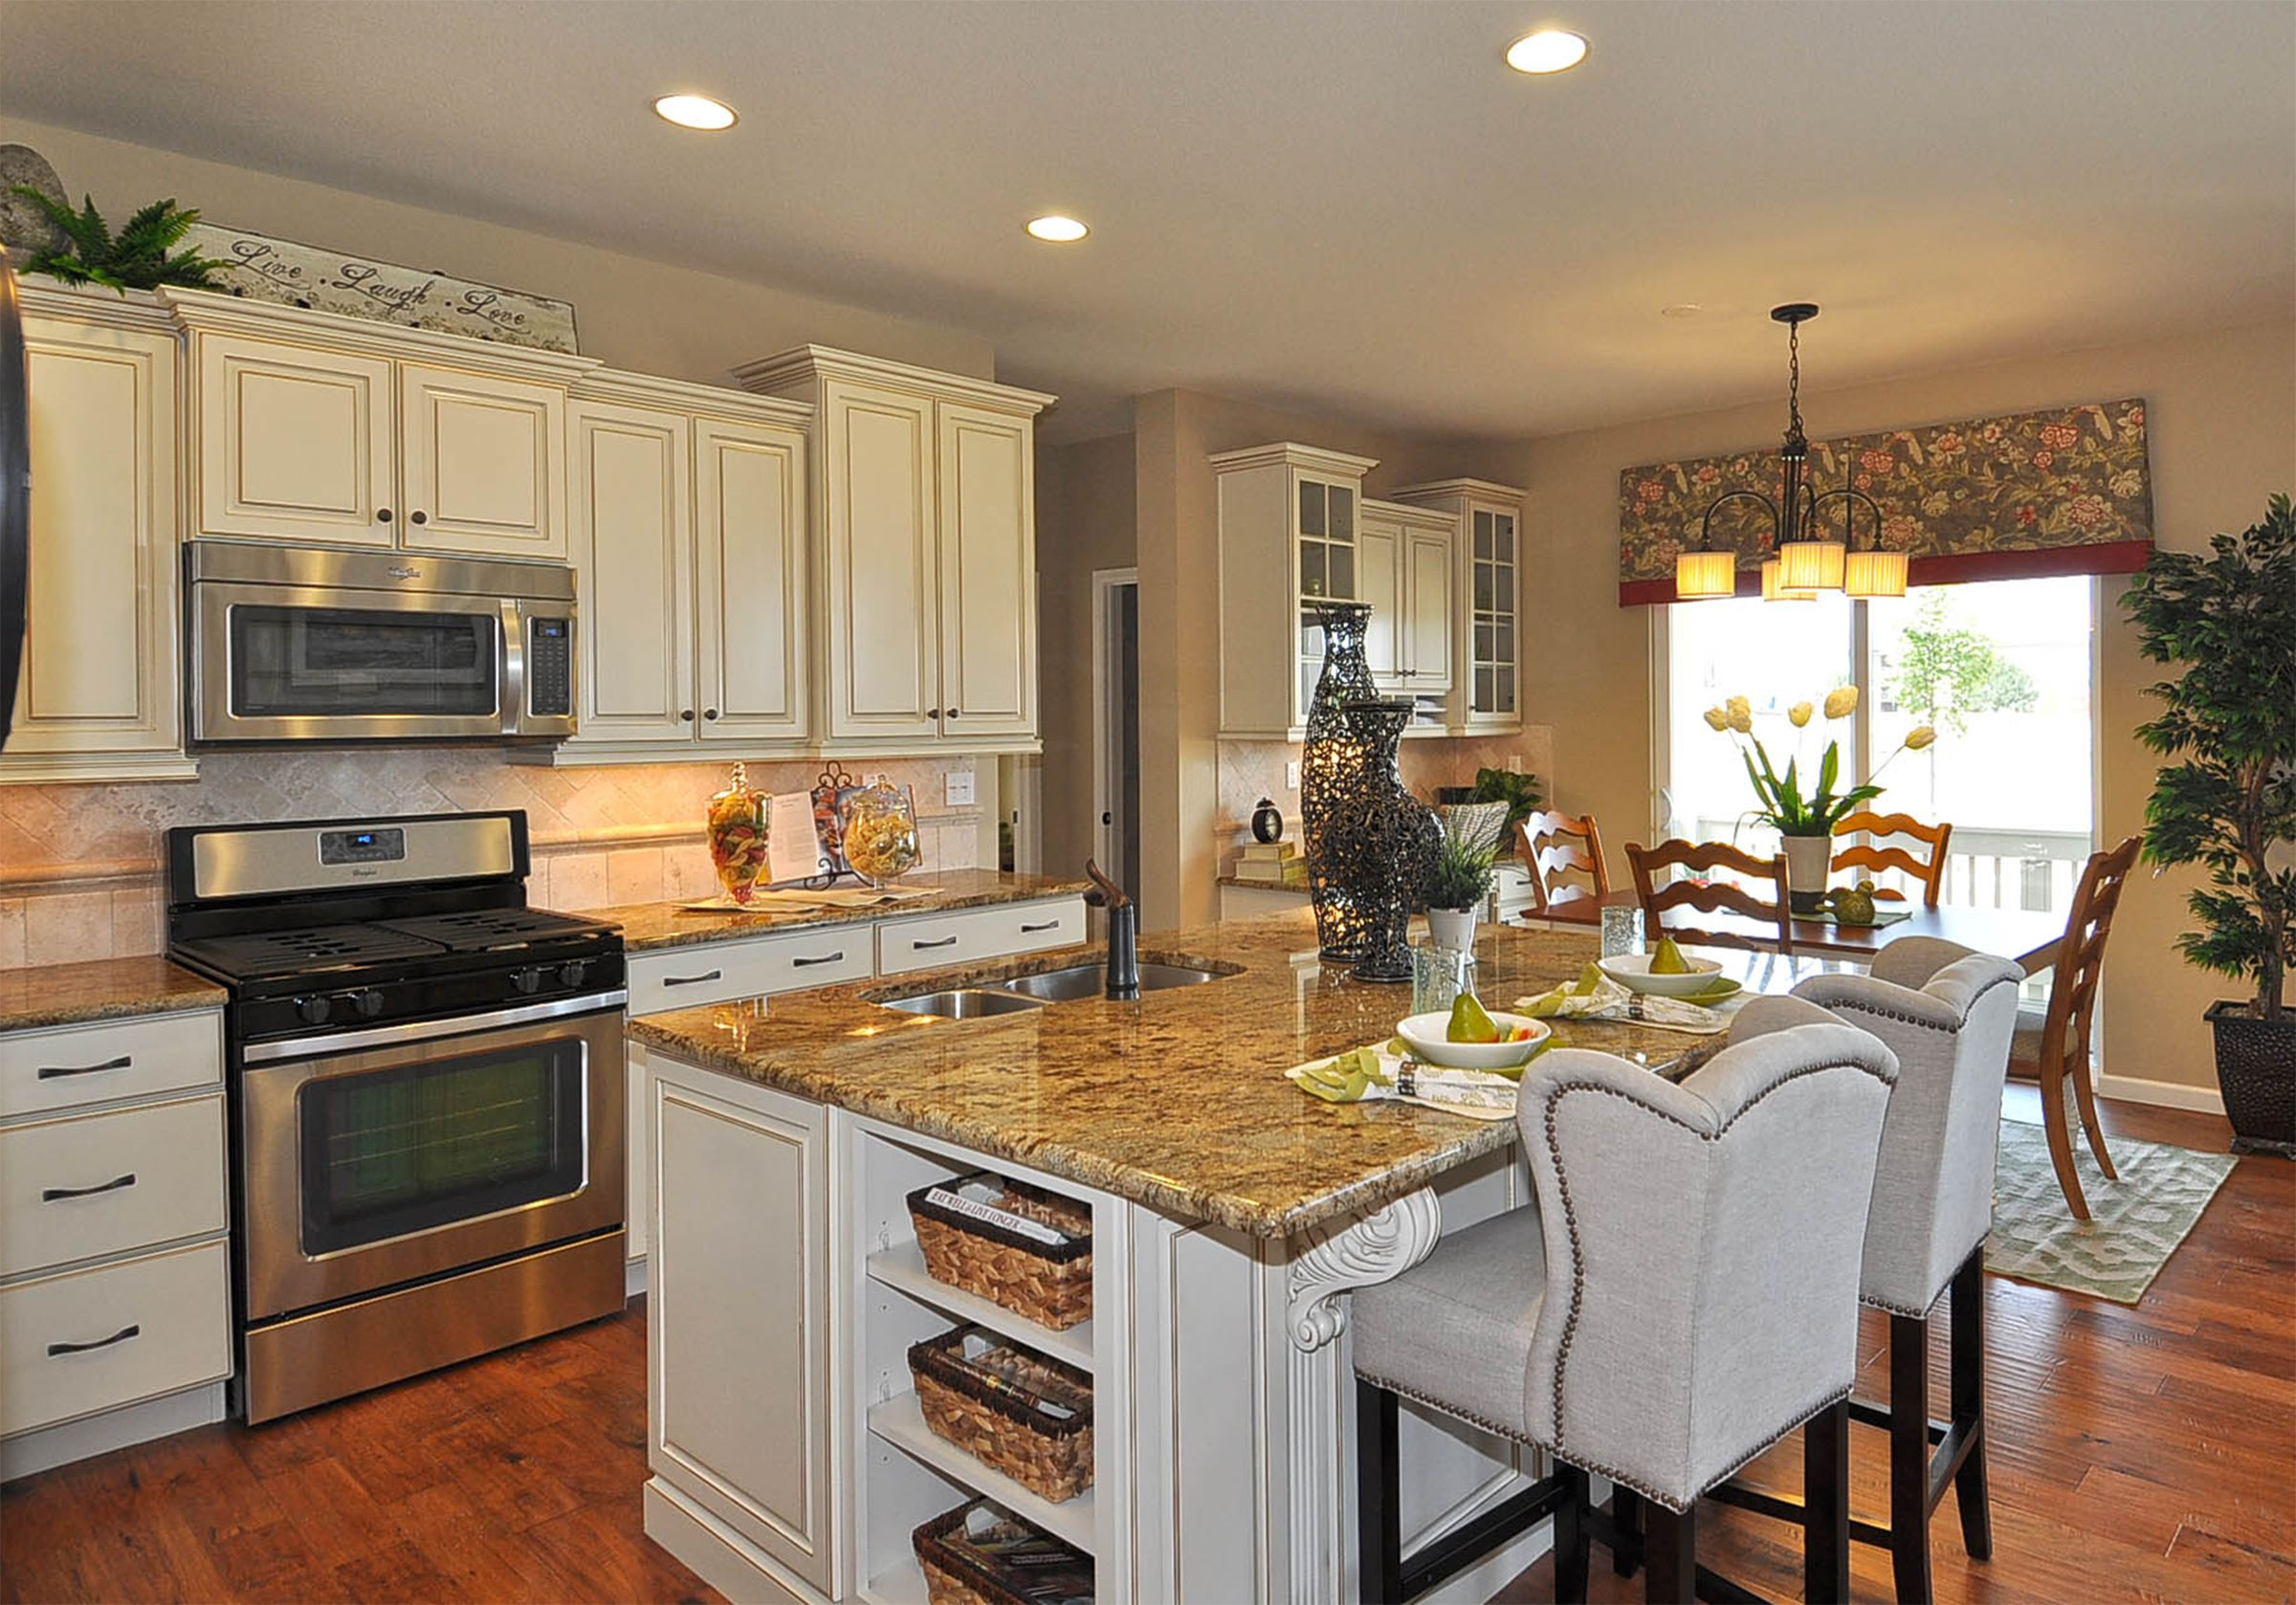 The Traditional Design Of The Kitchen In The Washington Model At Observatory Village In Fort